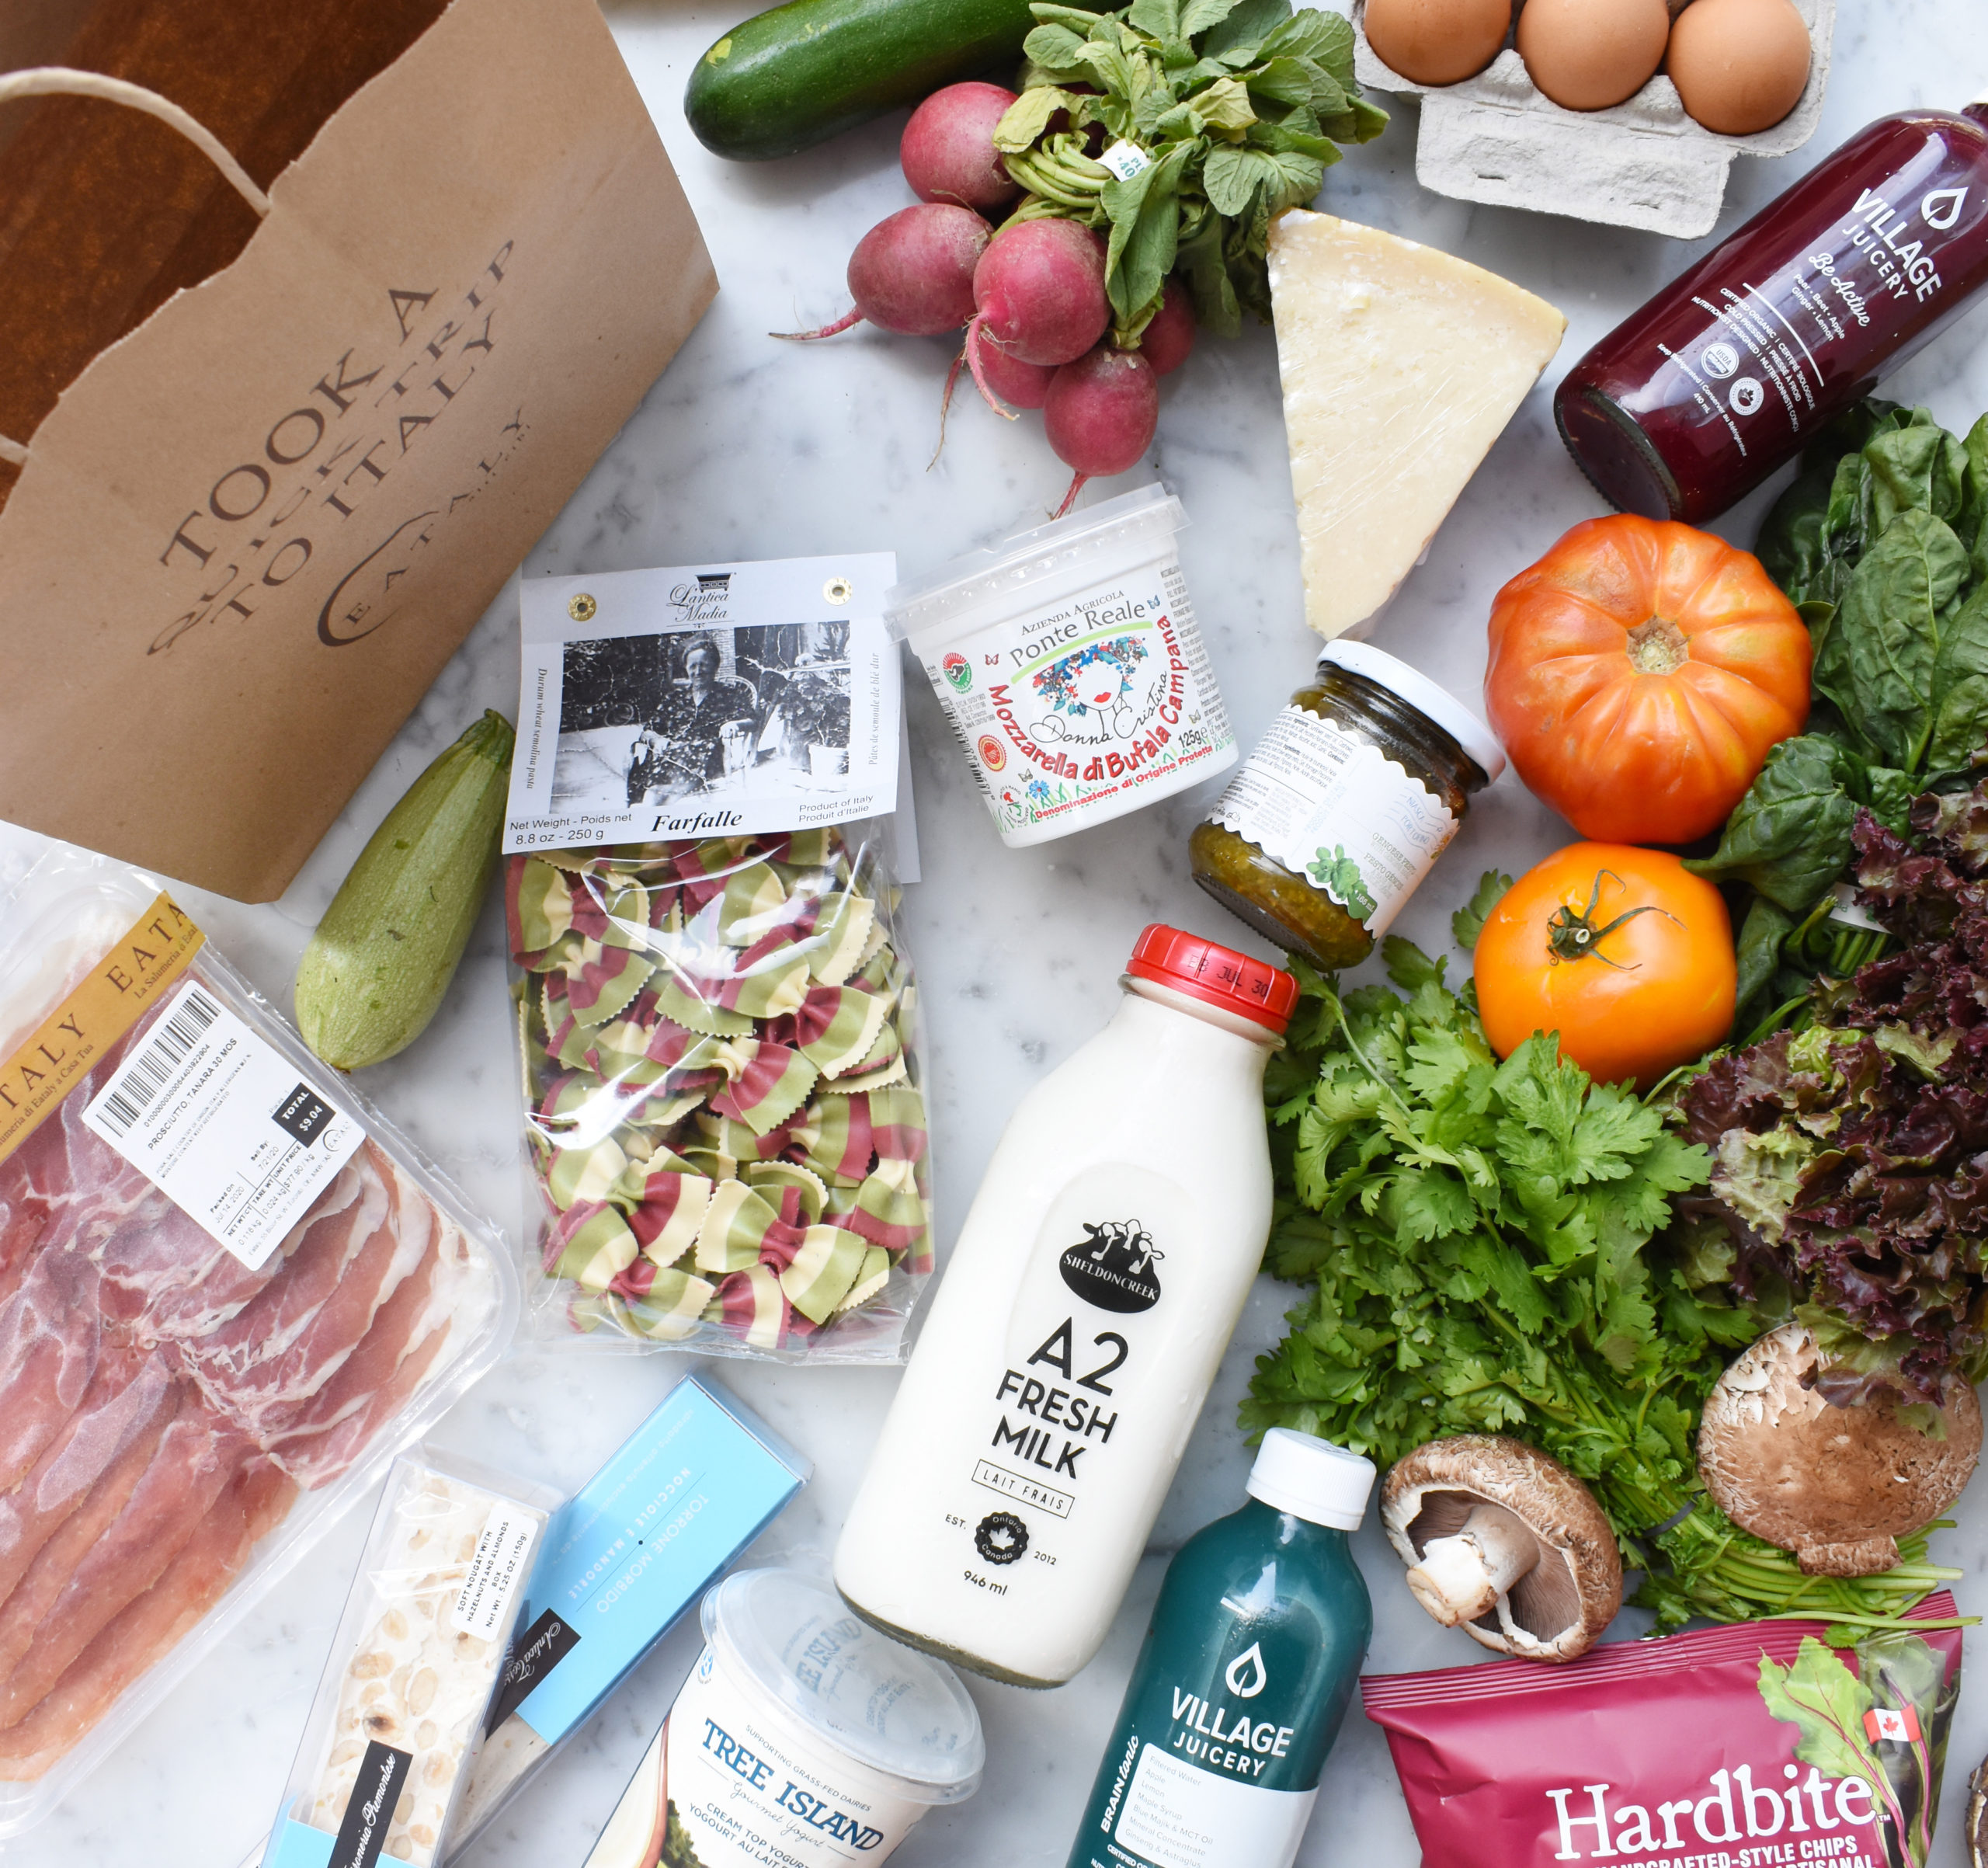 local and Italian groceries from Eataly